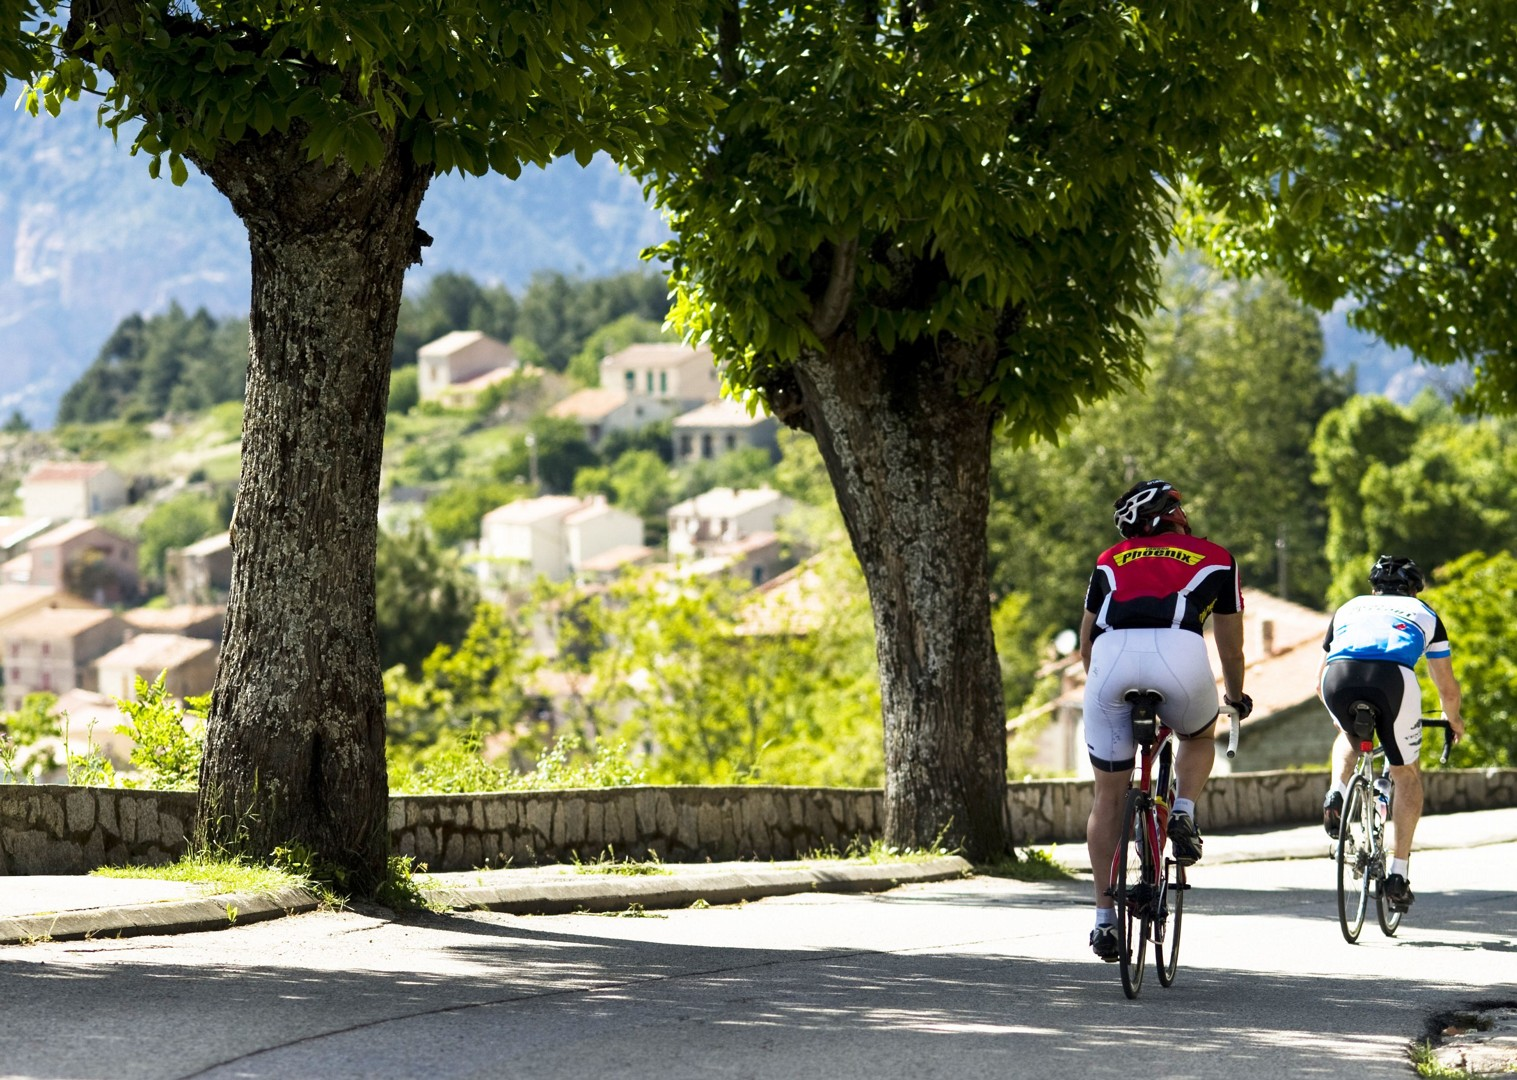 Corsicacycling4.jpg - Italy - Piemonte - La Strada del Vino - Guided Road Cycling Holiday - Road Cycling